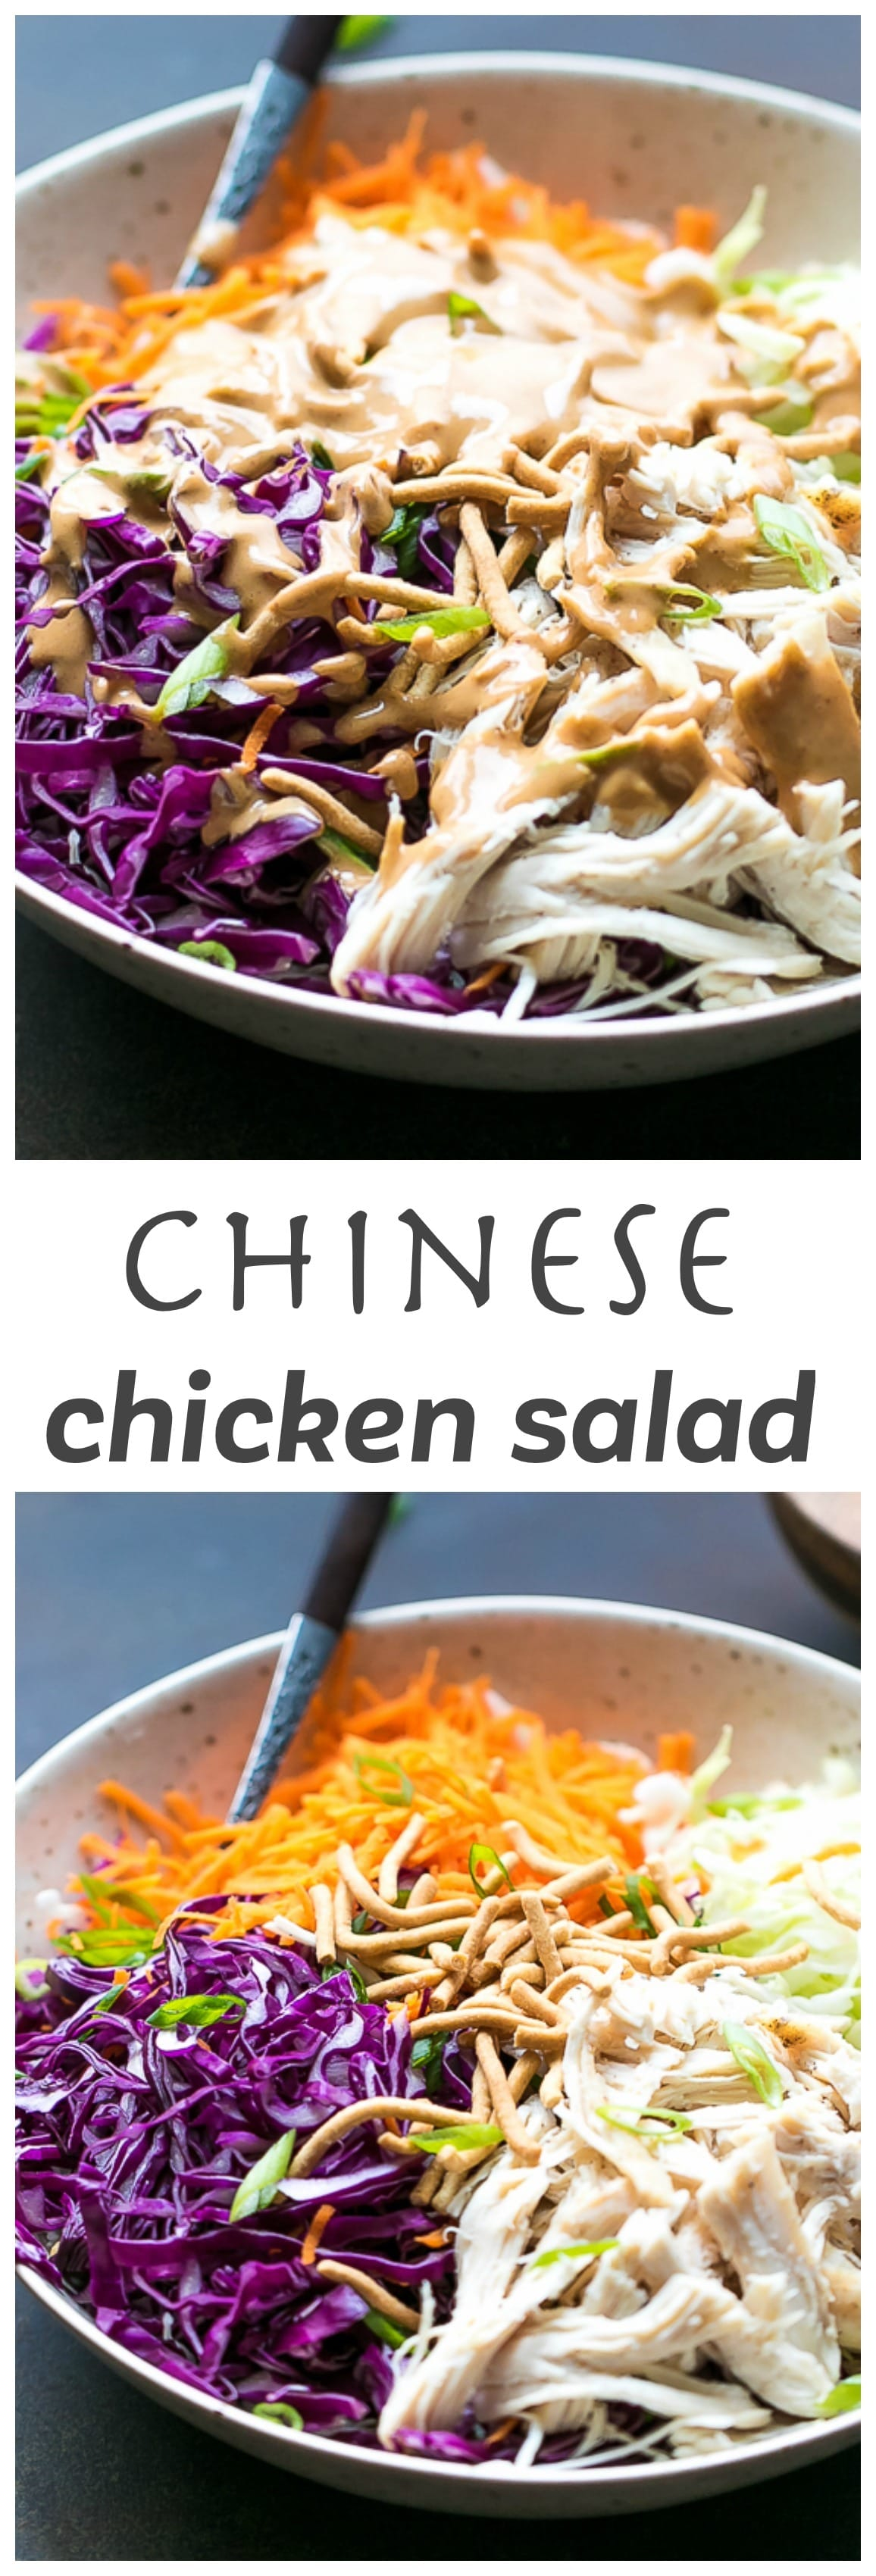 Easy Chinese Chicken Salad With Peanut Dressing Recipe